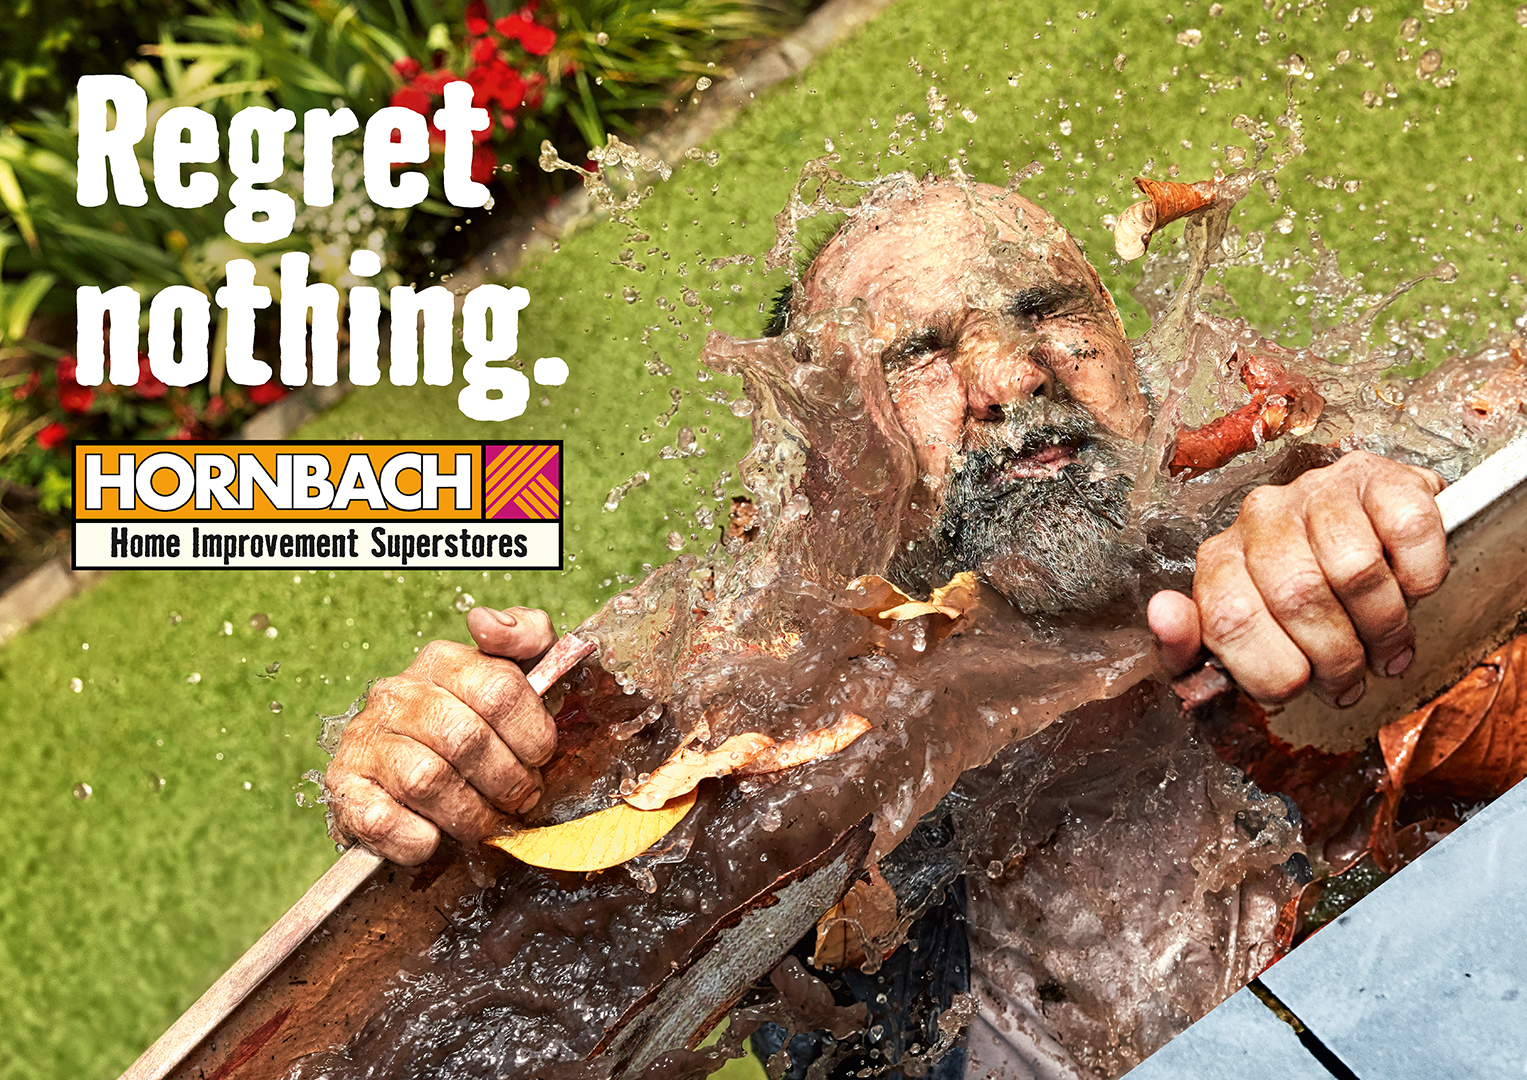 Top Danish Oil Hornbach Images - Autumnspadaro.com - autumnspadaro.com